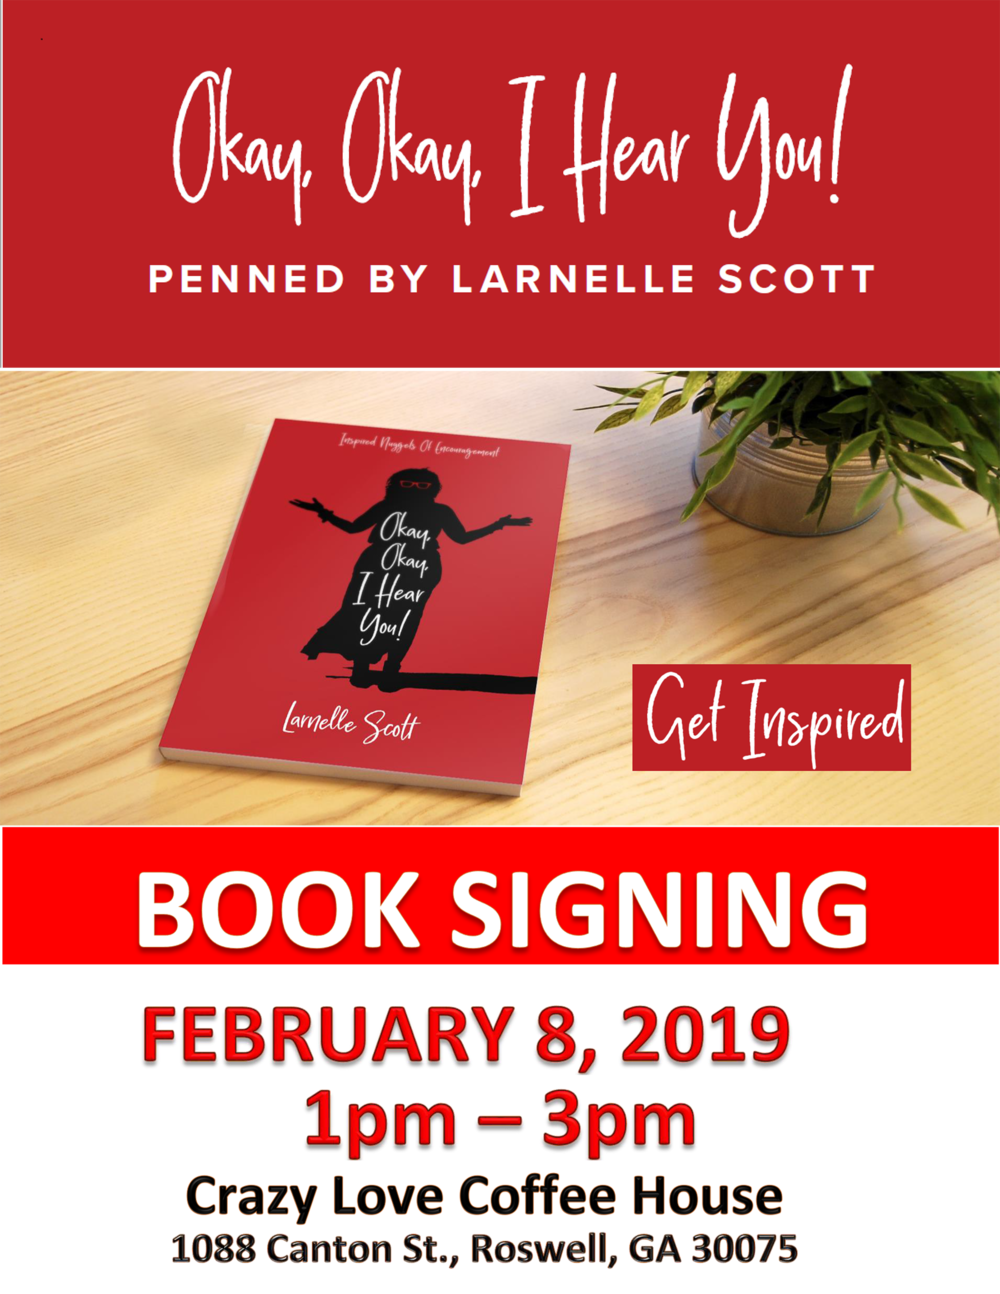 Book Signing poster_020819_Crazy Love.png